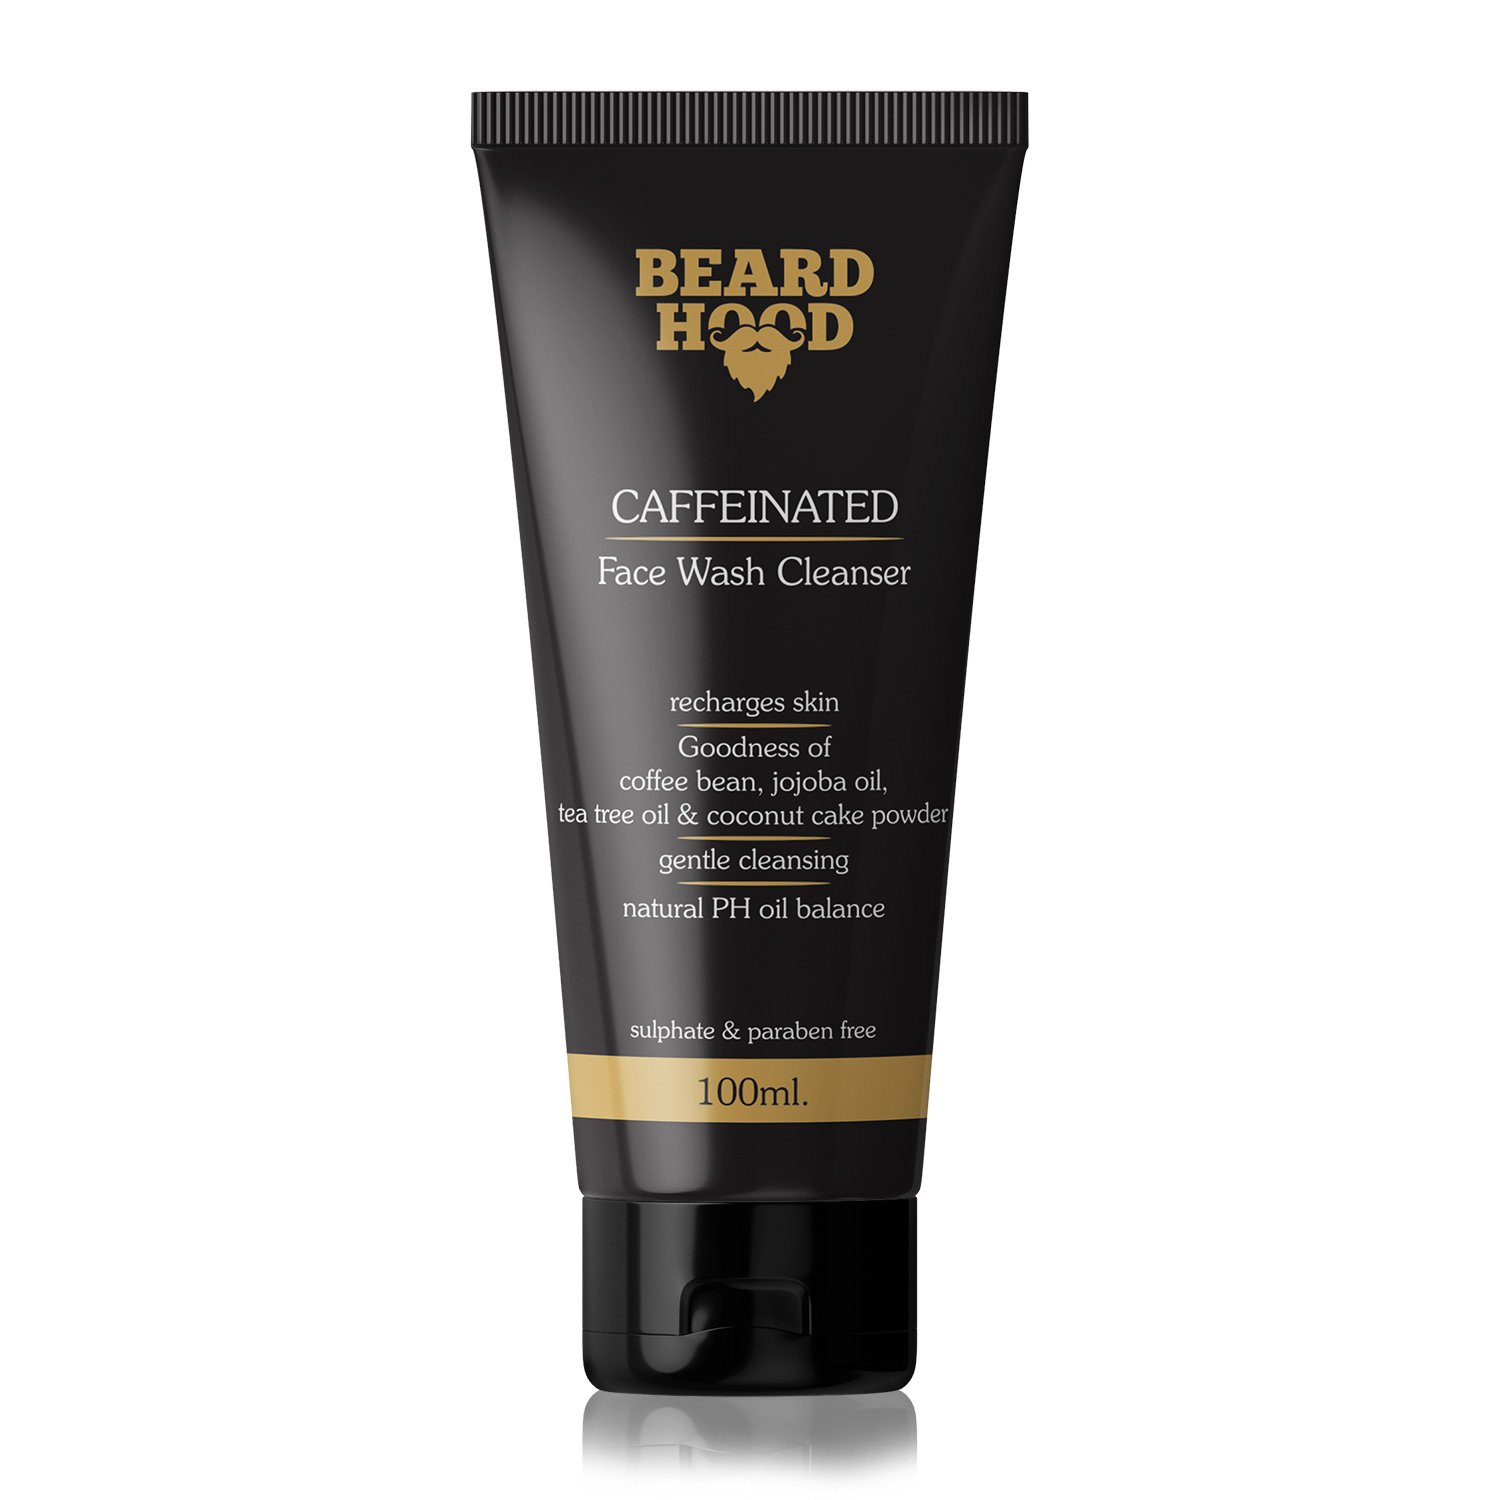 Beardhood Caffeine Face Wash Cleanser for Men, Brown, 100ml product image